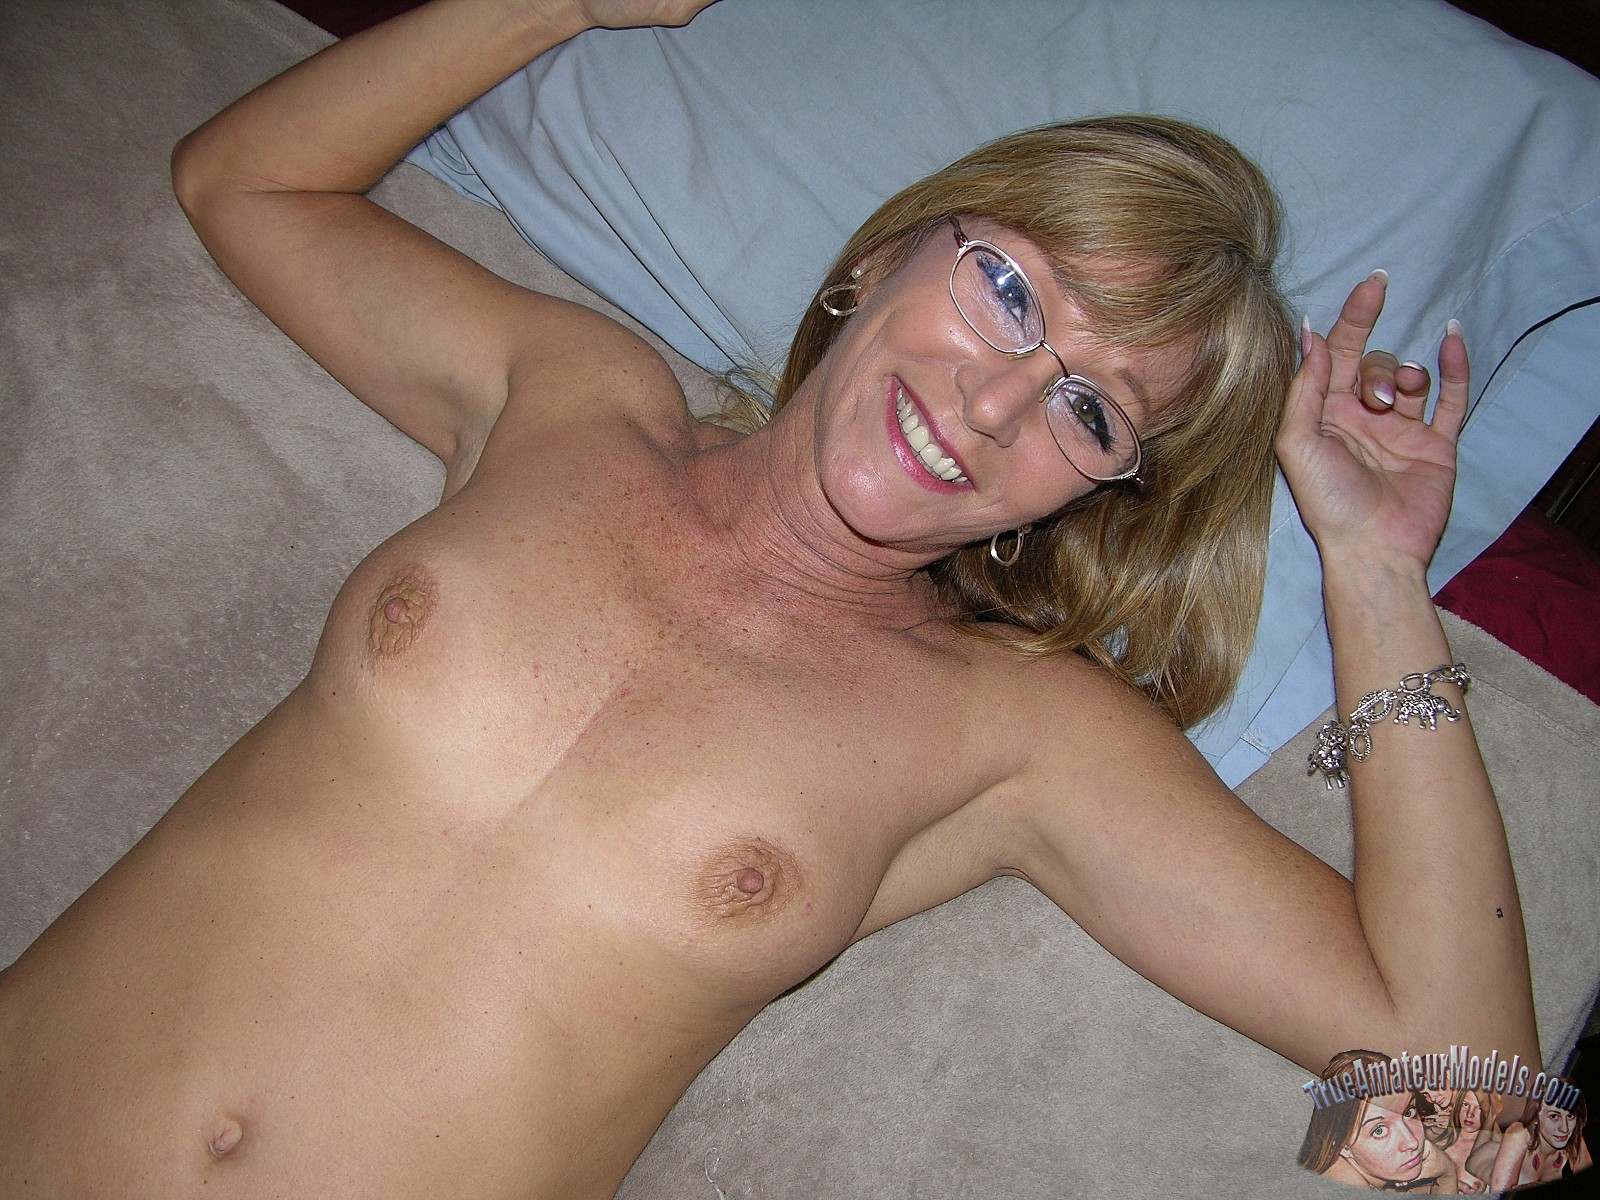 Amateur milf 51 years old cougar